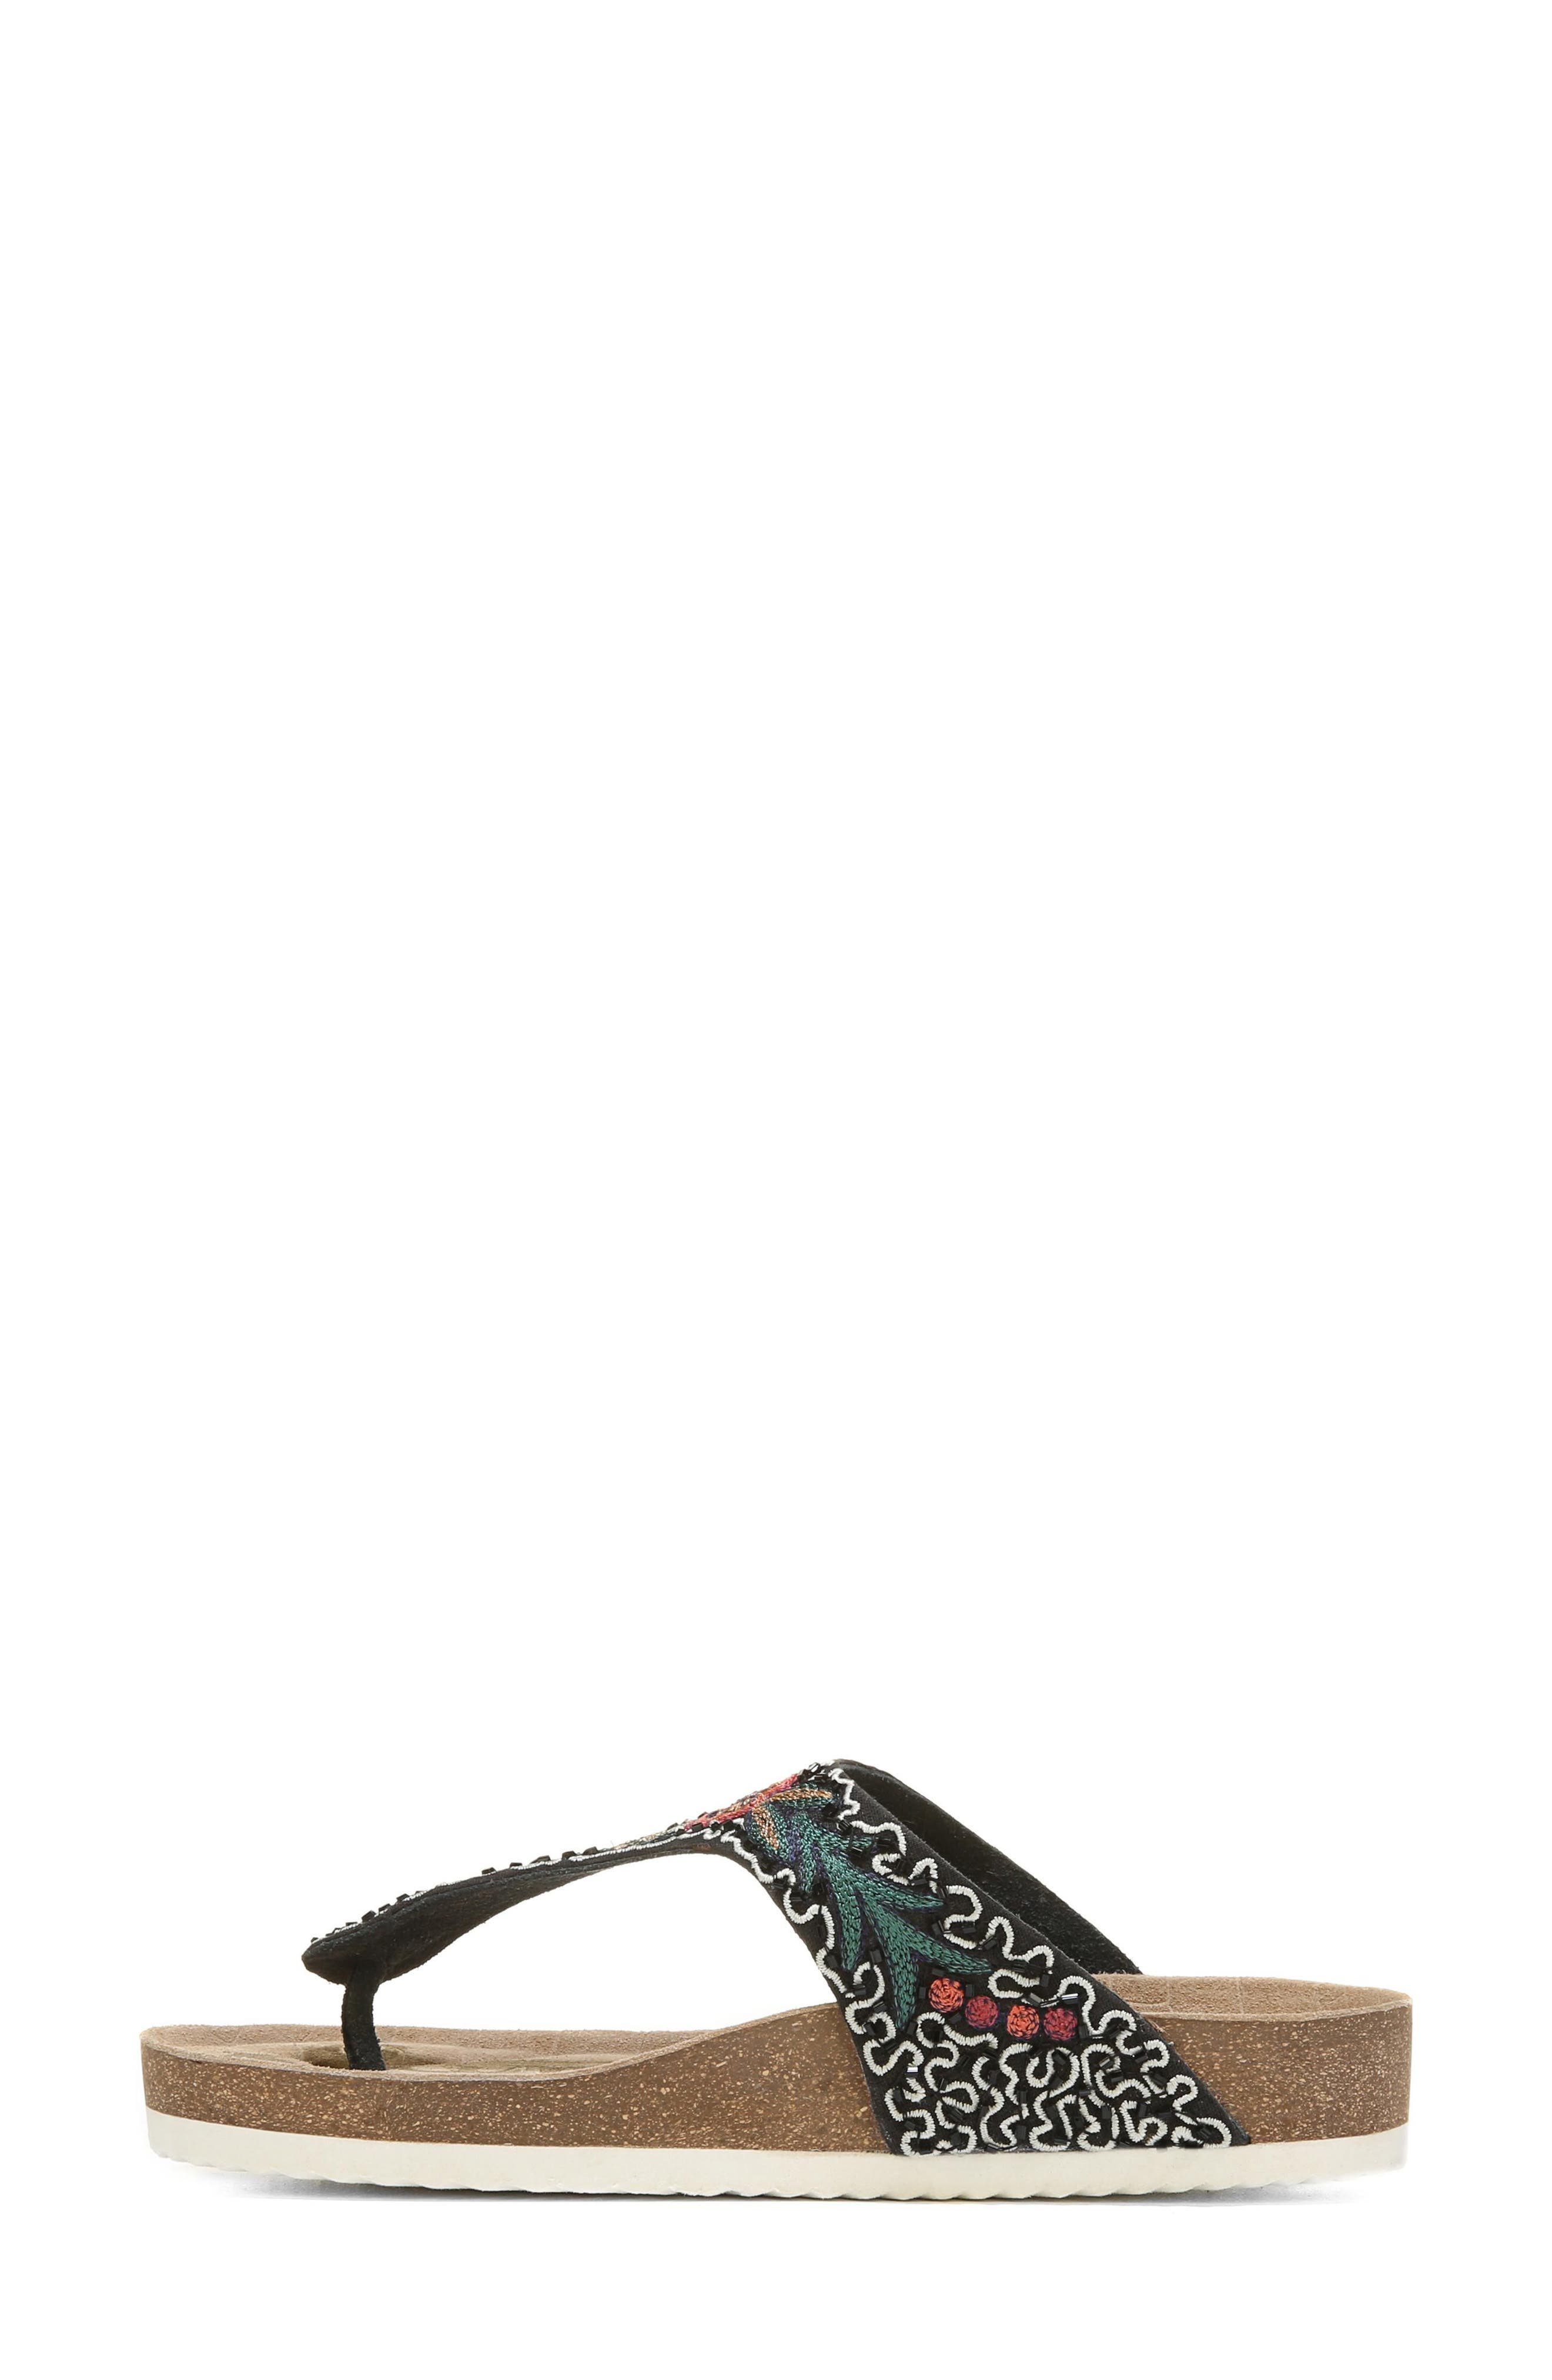 Olivie Beaded Flip Flop,                             Alternate thumbnail 3, color,                             001